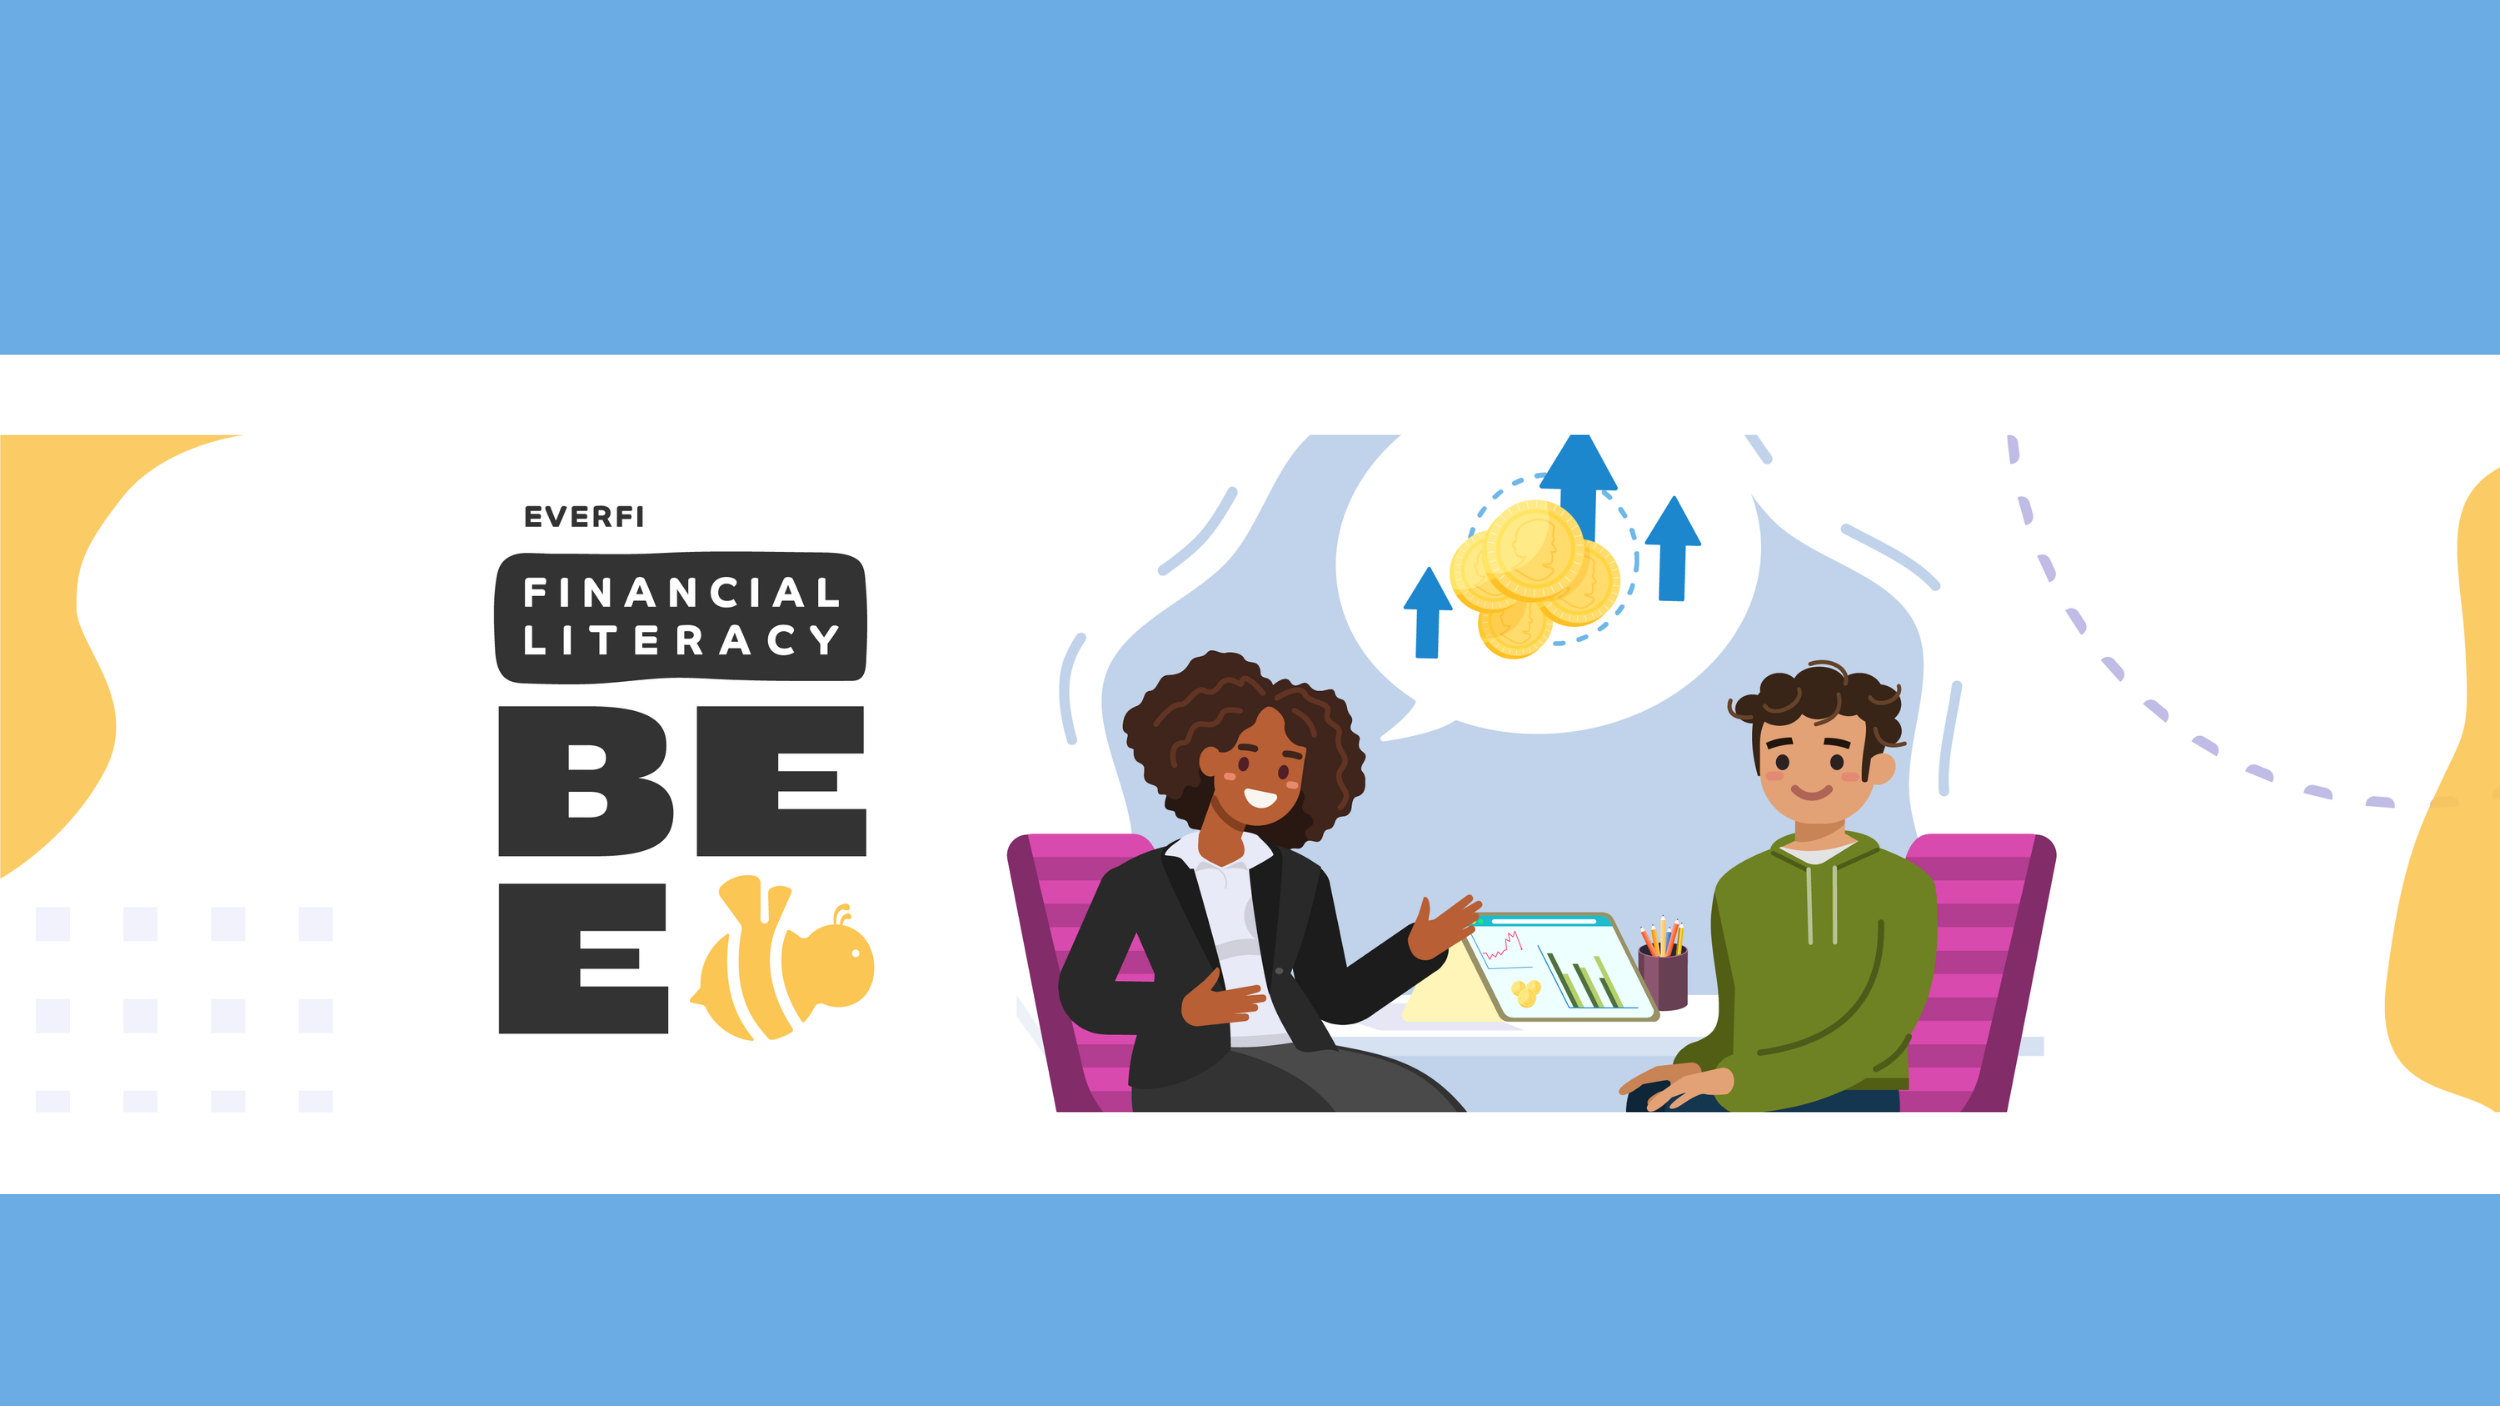 Everfi Financial Literacy Bee